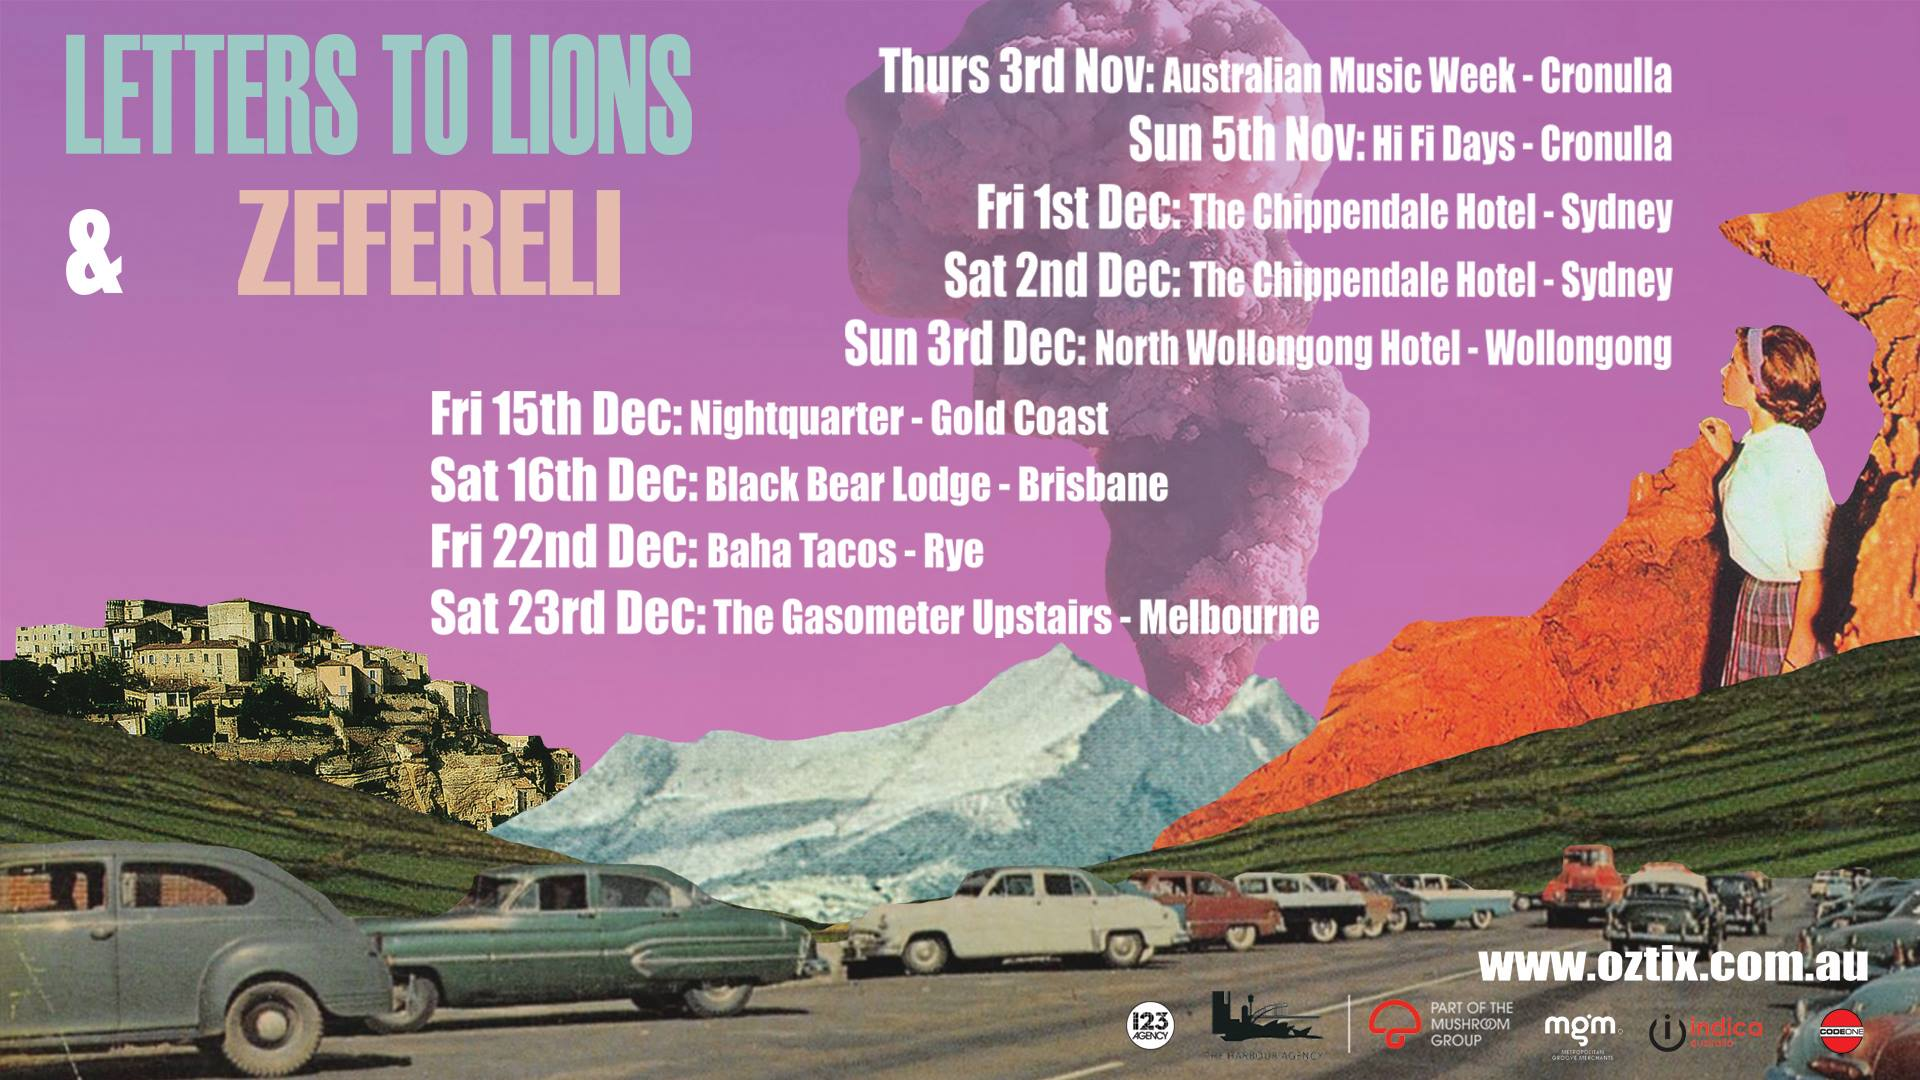 "Letters to Lions  and  Zefereli  are teaming up for a co-headline tour, set to spice up your summer. Hitting the road for a set of very special shows along Australia's East Coast.   LETTERS TO LIONS A true to life rock and roll band, the energy of friends crashing in vans, live shows full of piss and vinegar and sacrificing the body. Sprawling guitar melodies and aggressive, ambitious vocals, described as a concoction of swooning aggression and dance pop sensibility with comparisons to Kings of Leon, WU LYF, last Dinosaurs and Foals; the boys may just become your new favorite indie band  ZEFERELI Zefereli (aka Alistar Richardson) is a DIY kind of guy. as his former band The Cairos faded amongst bad vibes and fake smiles Alistar began Zefereli: a creative outlet to just do what he felt like when he felt like, not as a money maker, but as a cathartic ode to the self. ""It was fun, it was real, it was easy and it made me realise why the hell I was doing music."" Part of this renewal was the creative paring with fellow musician Clea. Alistar has recorded her more recent music and Clea performs and collaborates with Zefereli  +  The Hideaways"